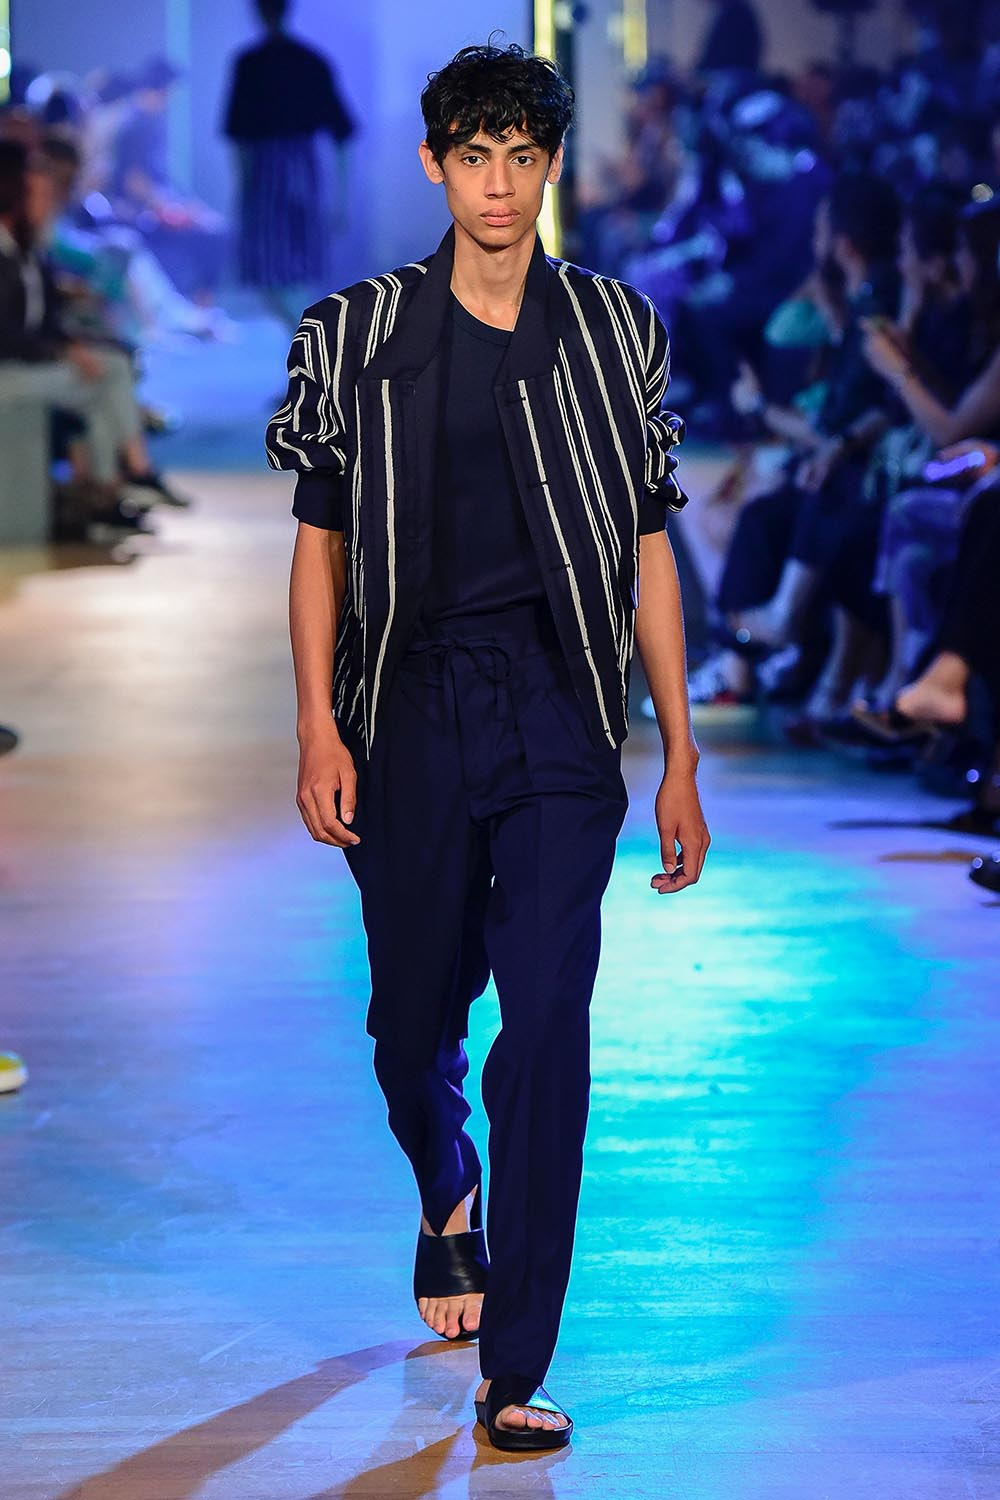 Cerruti 1881 Paris Fashion Week Men's SS19 - Sagaboi - Look 35